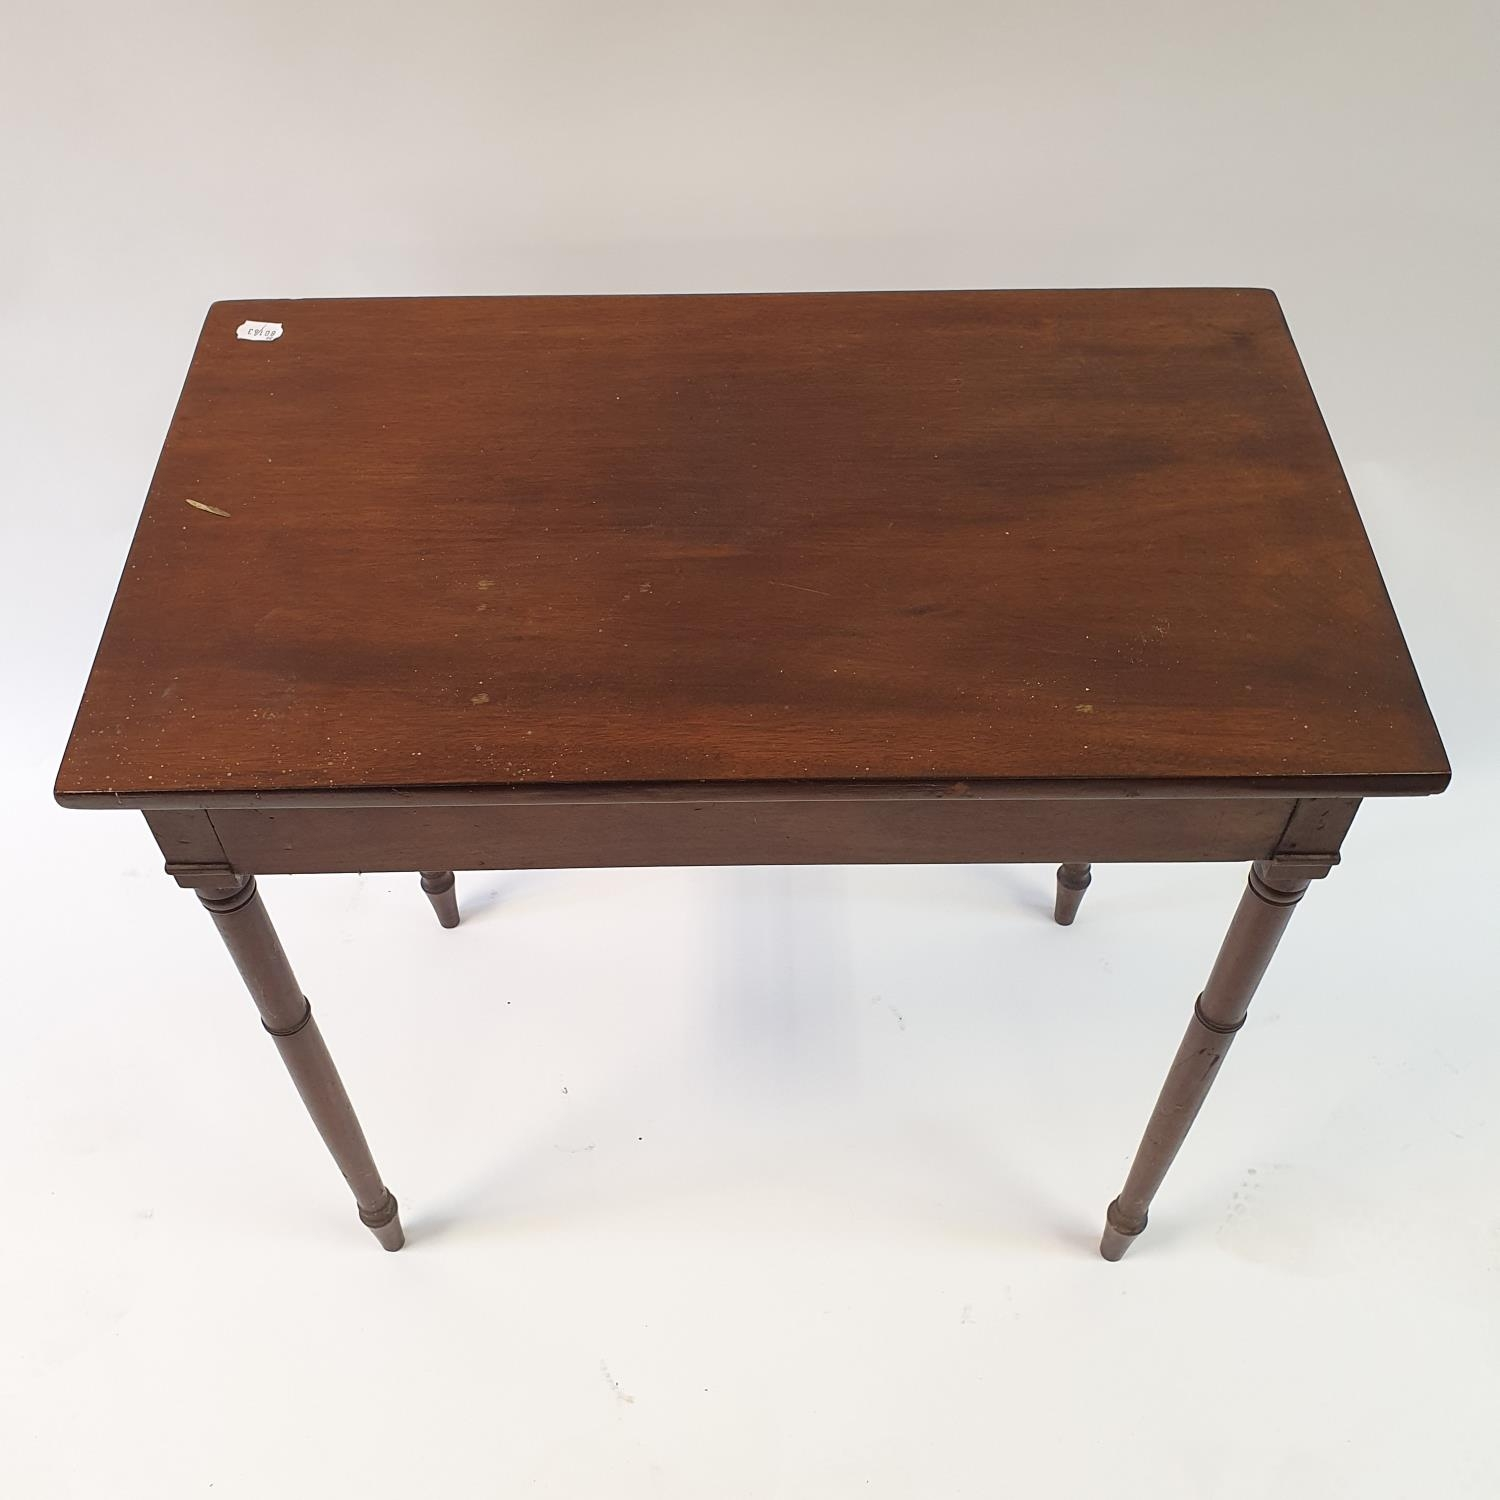 A mahogany side table, 76 cm wide - Image 3 of 3